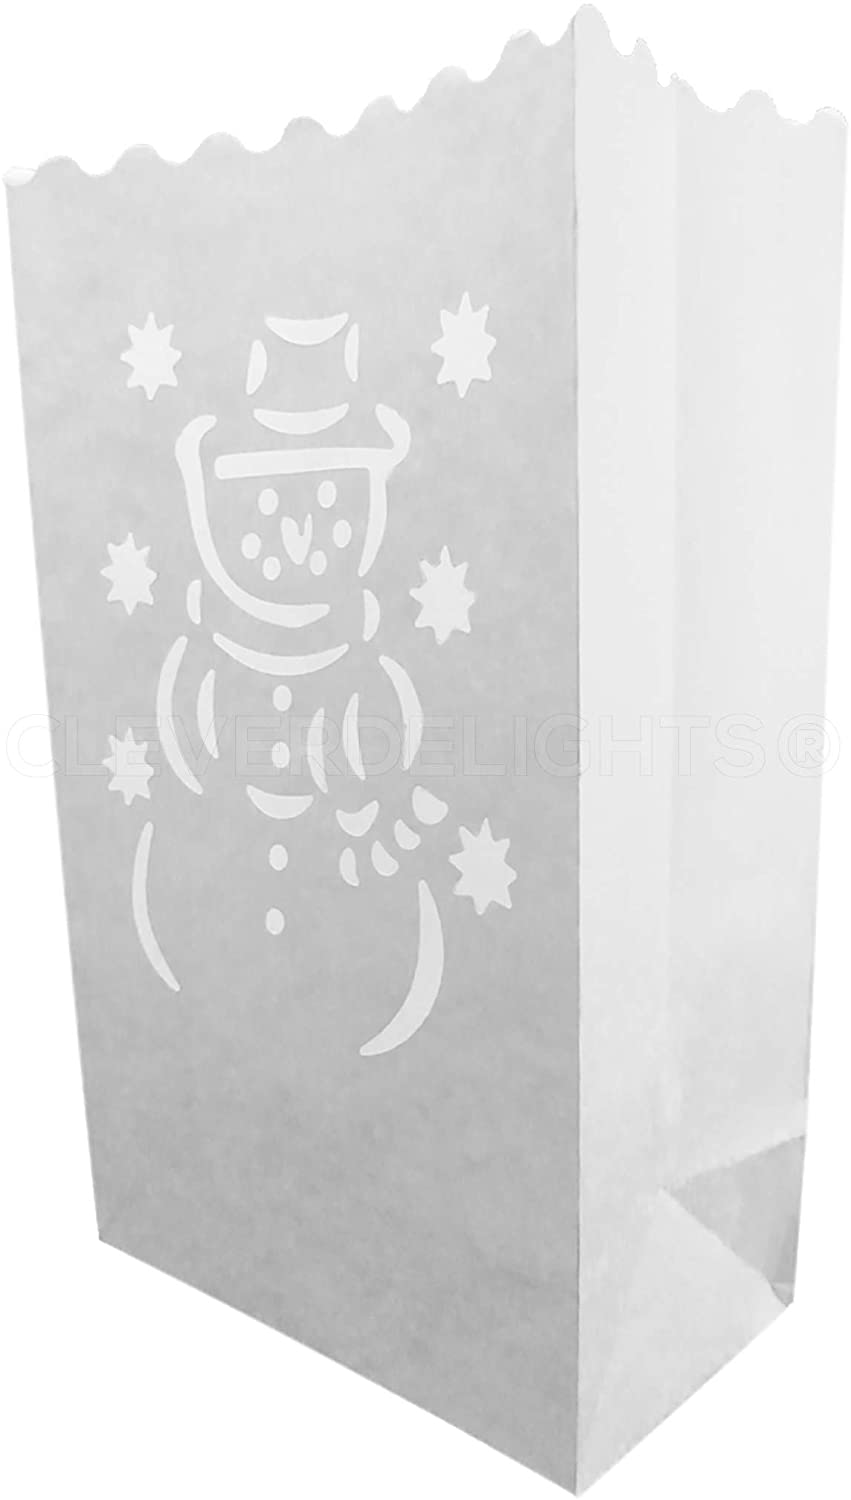 CleverDelights White Luminary Bags - 50 Count - Snowman Design - Wedding Party Christmas Holiday Luminaria